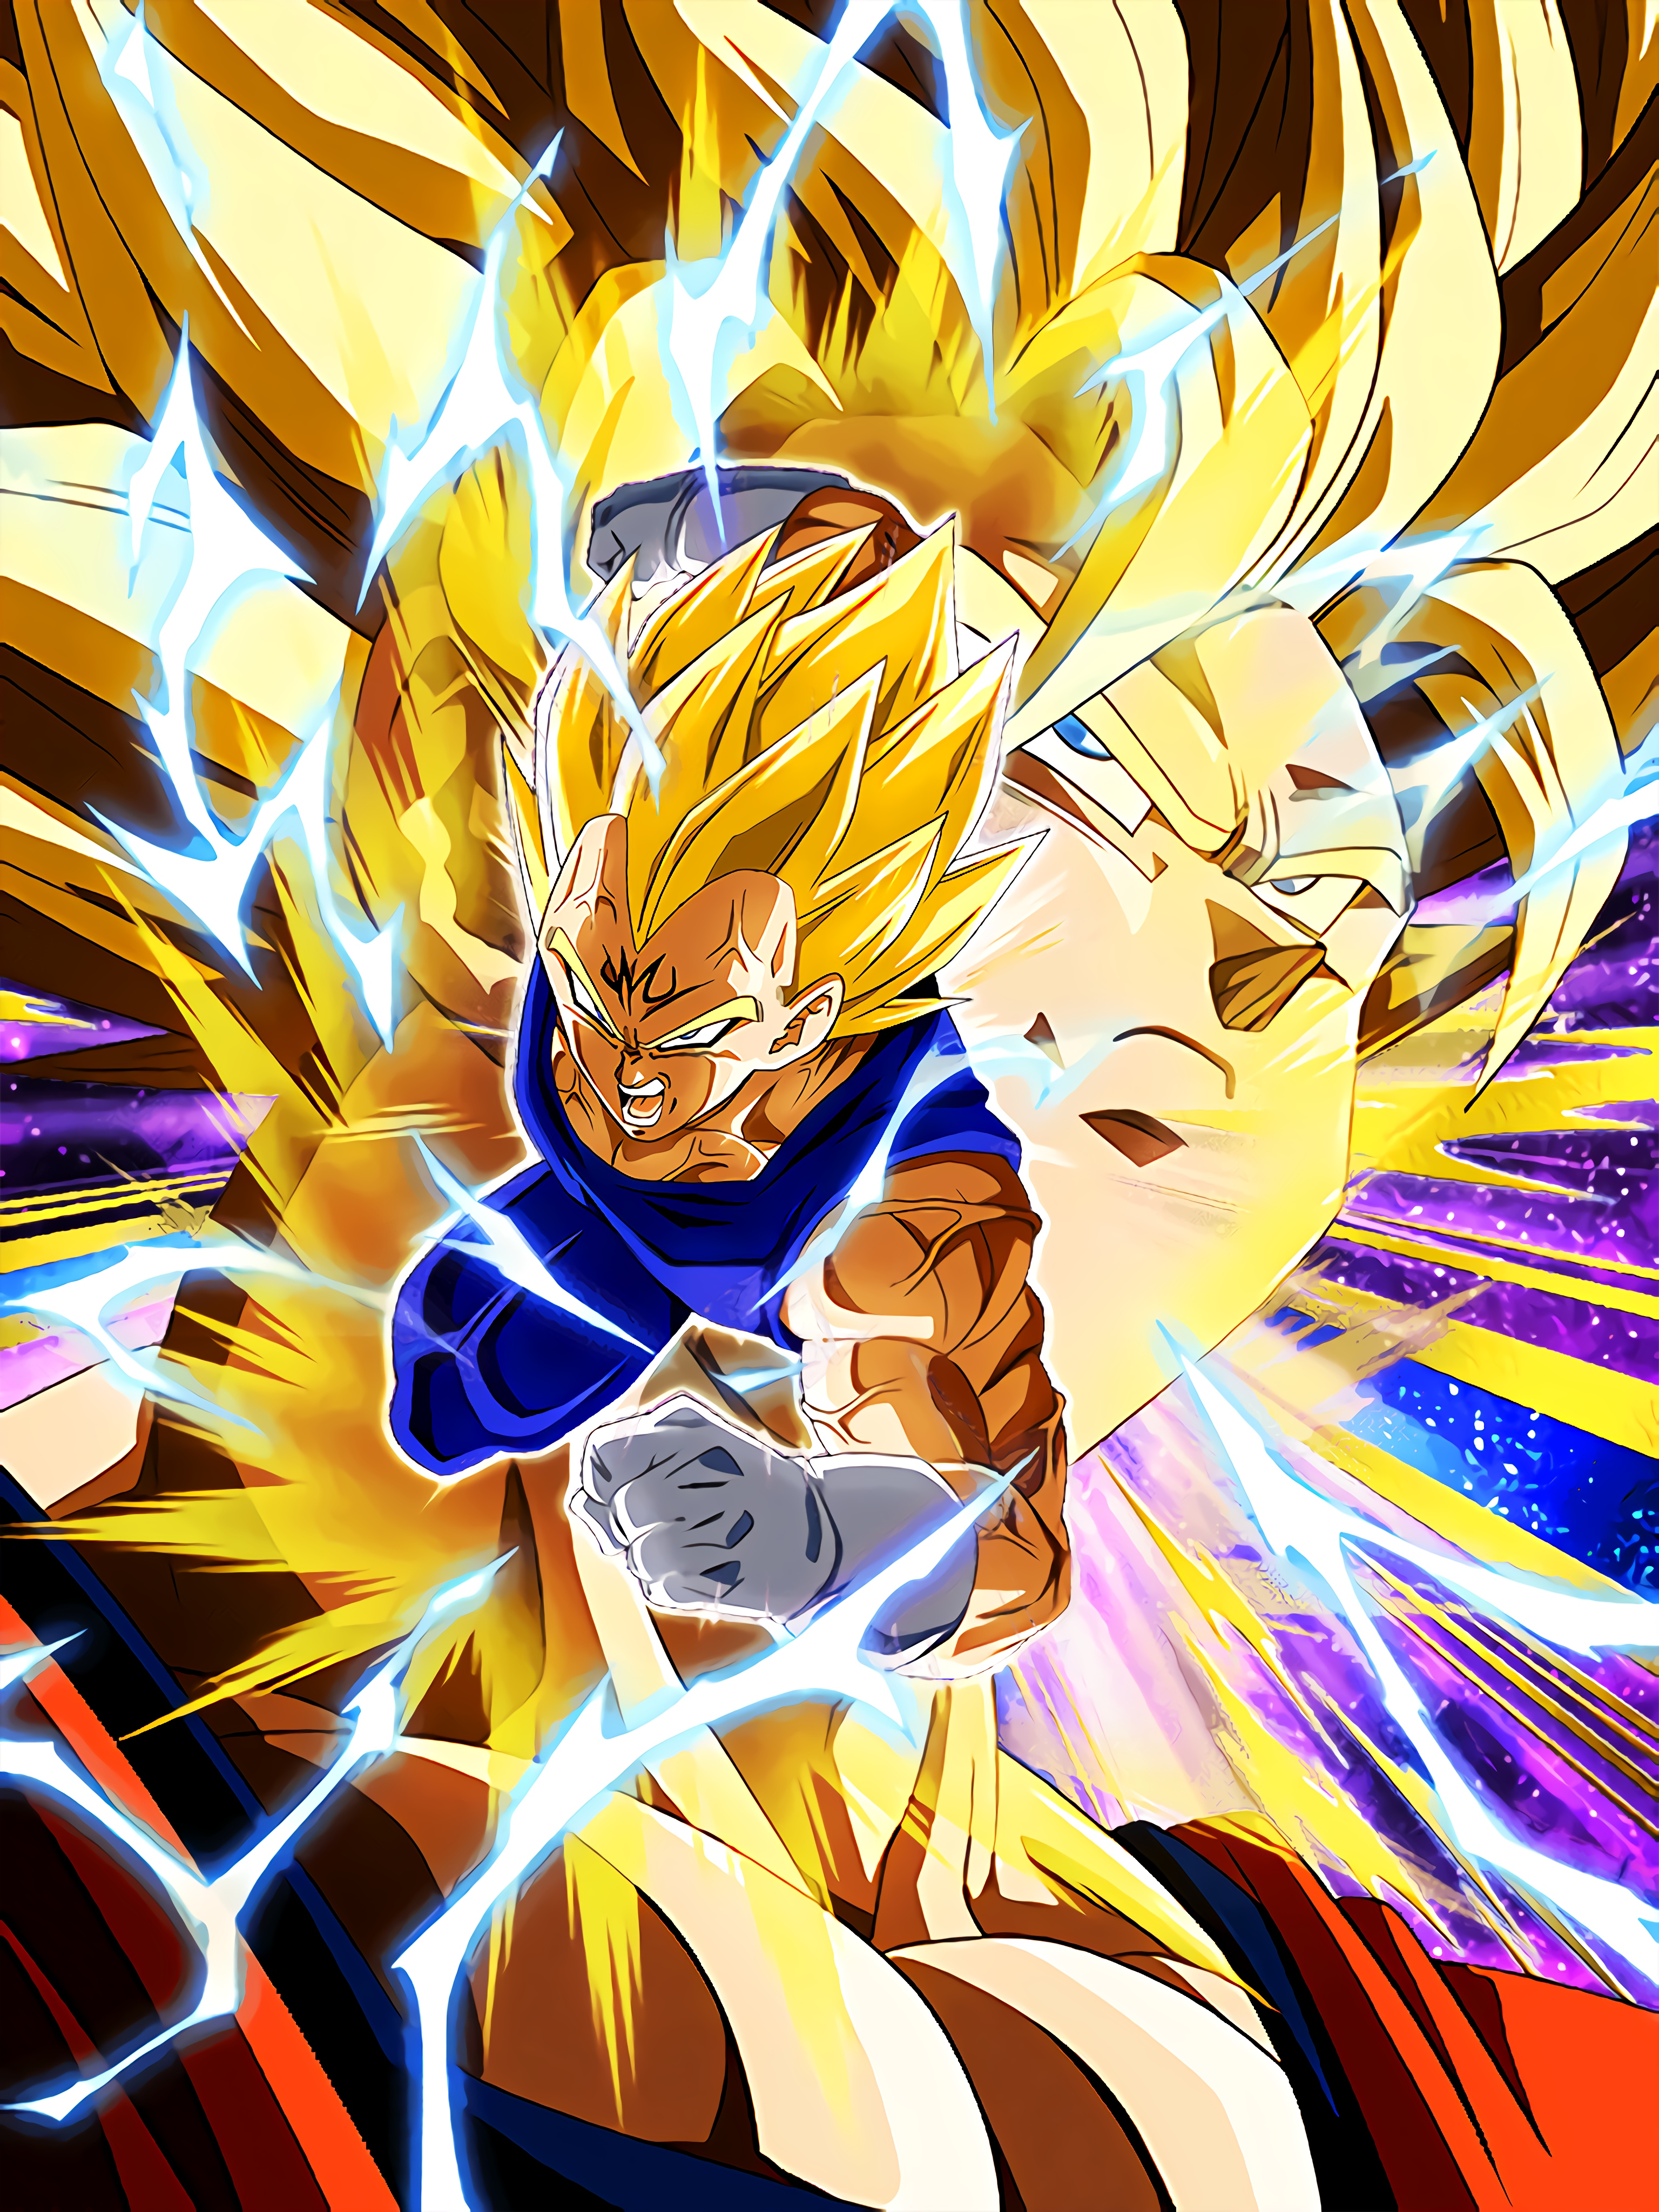 FIght for Pride Majin Vegeta Art (Dragon Ball Z Dokkan Battle)